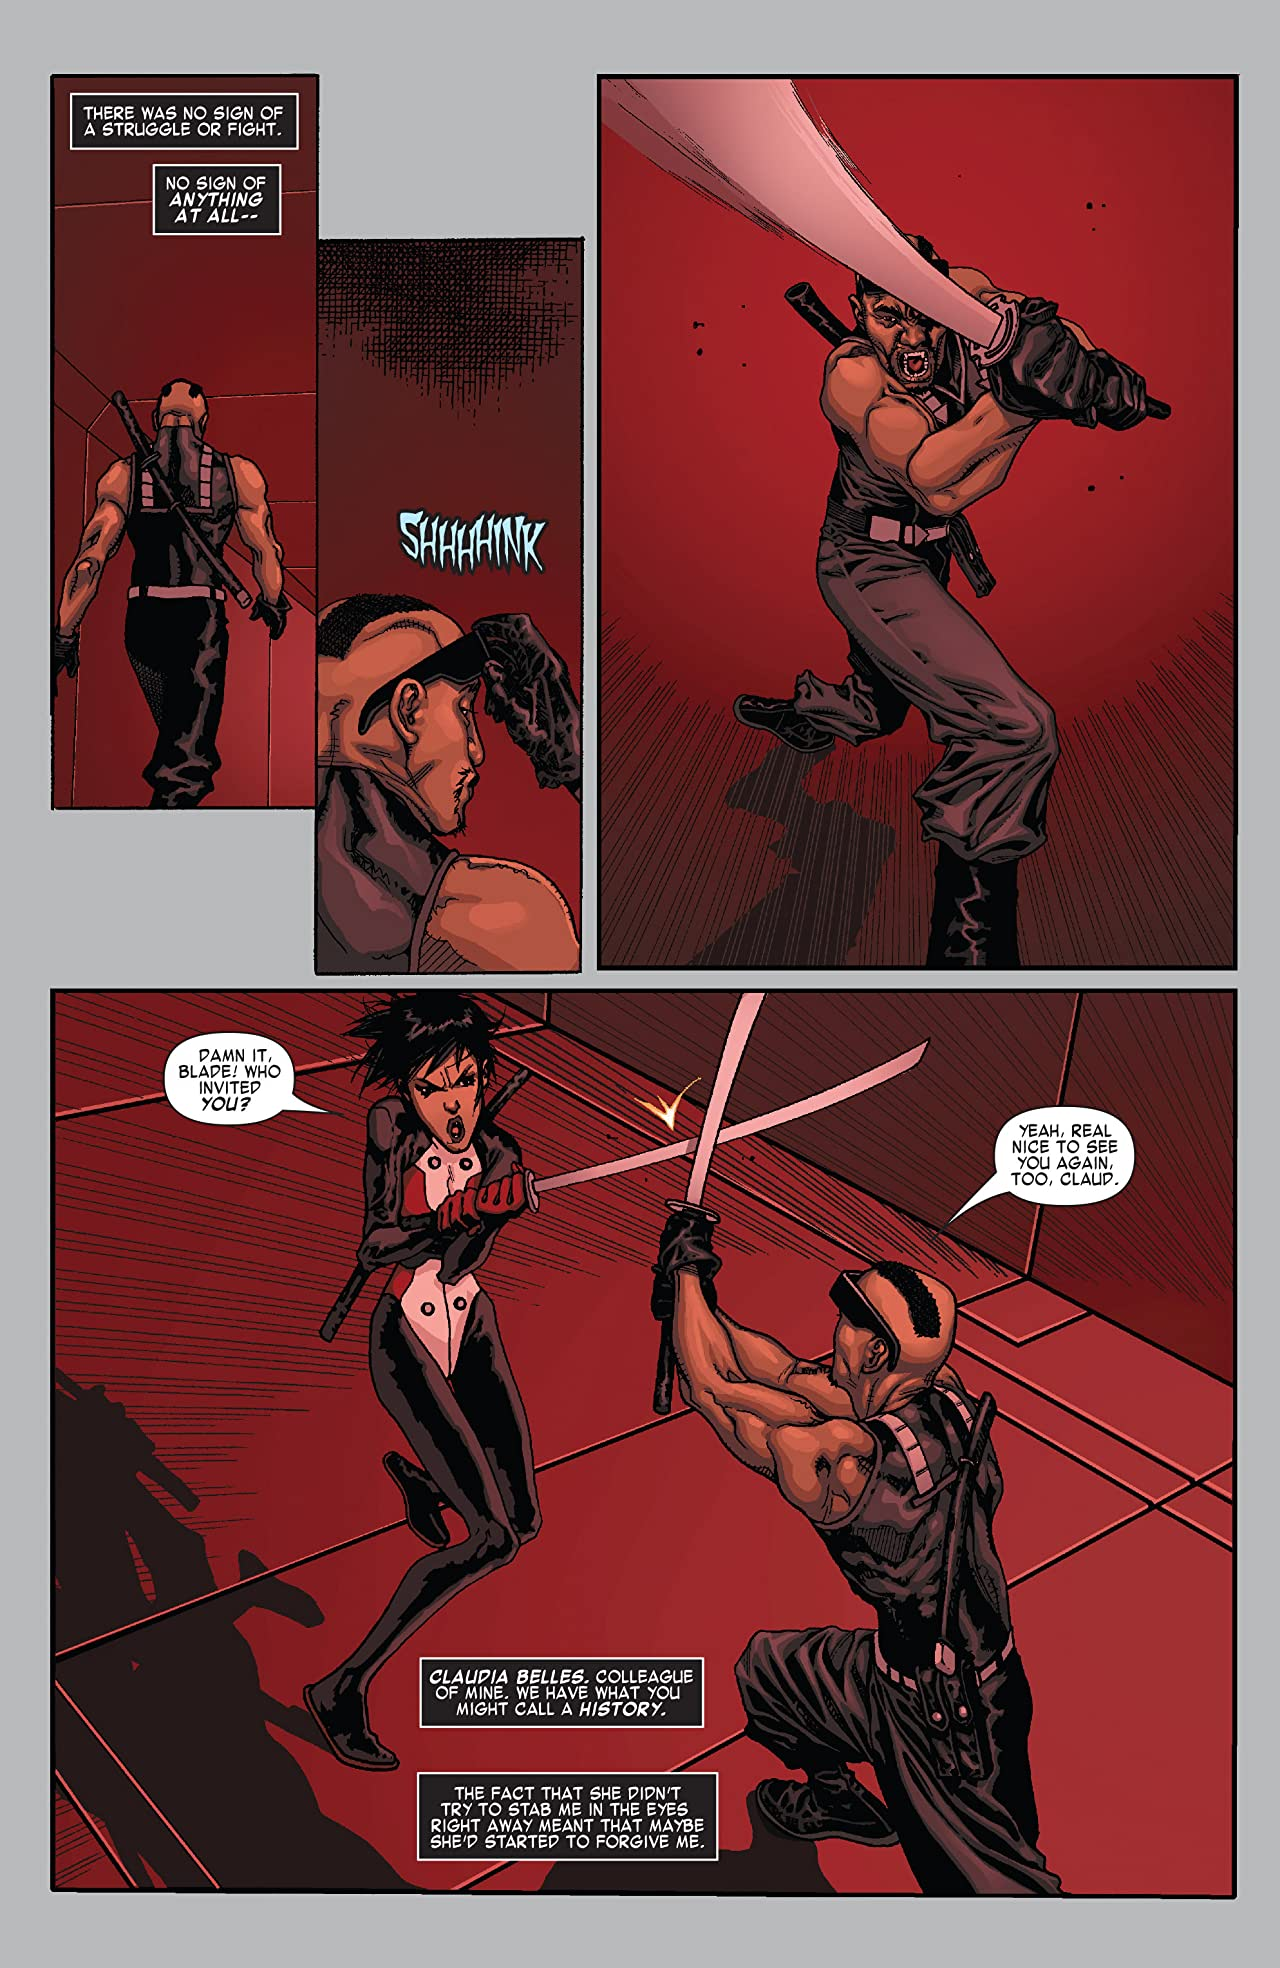 X-Men: Curse of the Mutants - Blade (2010) #1